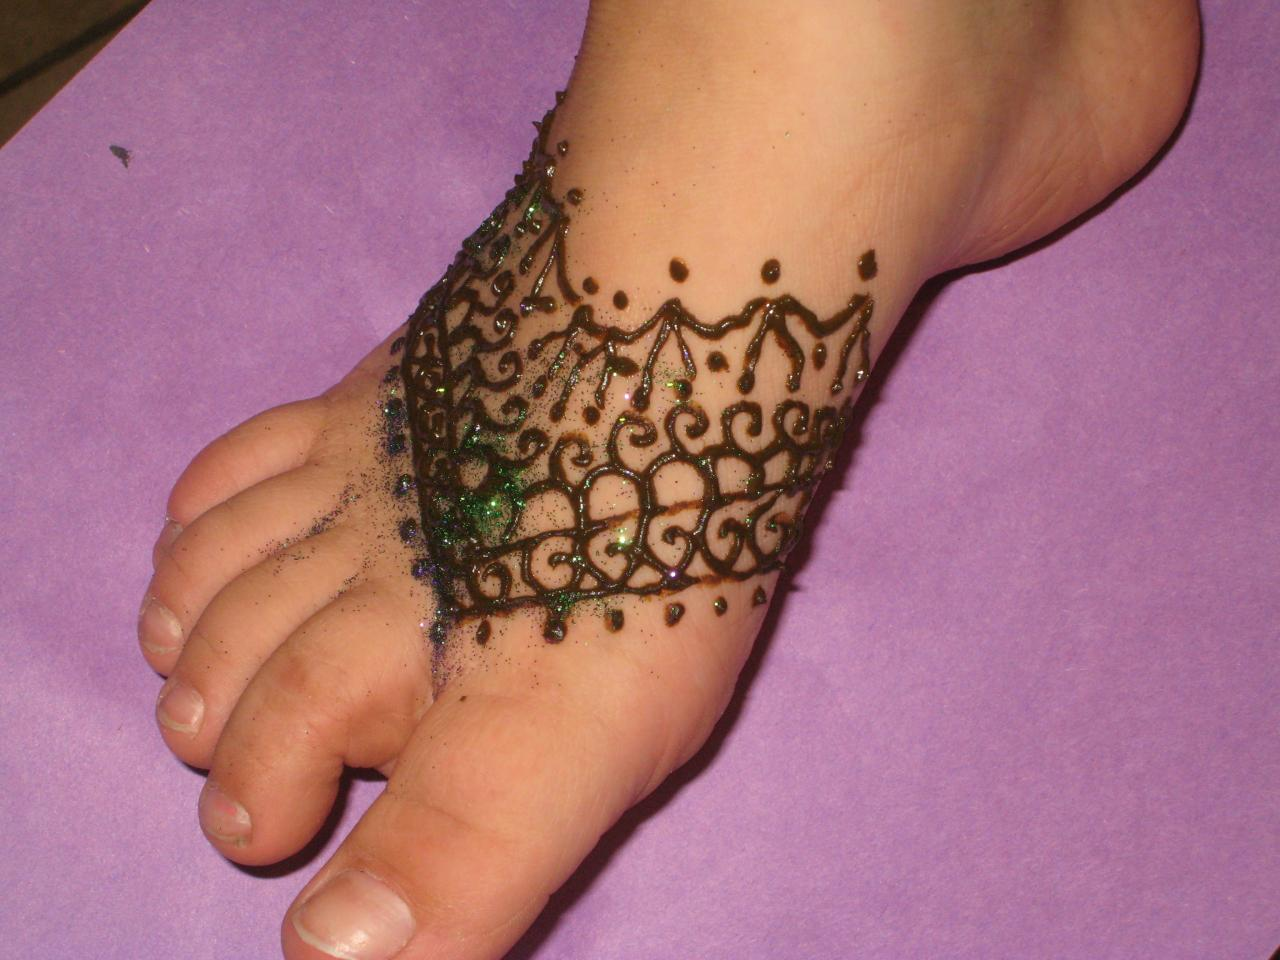 Henna tattoos designs ideas and meaning tattoos for you for Tattoo ideas for foot